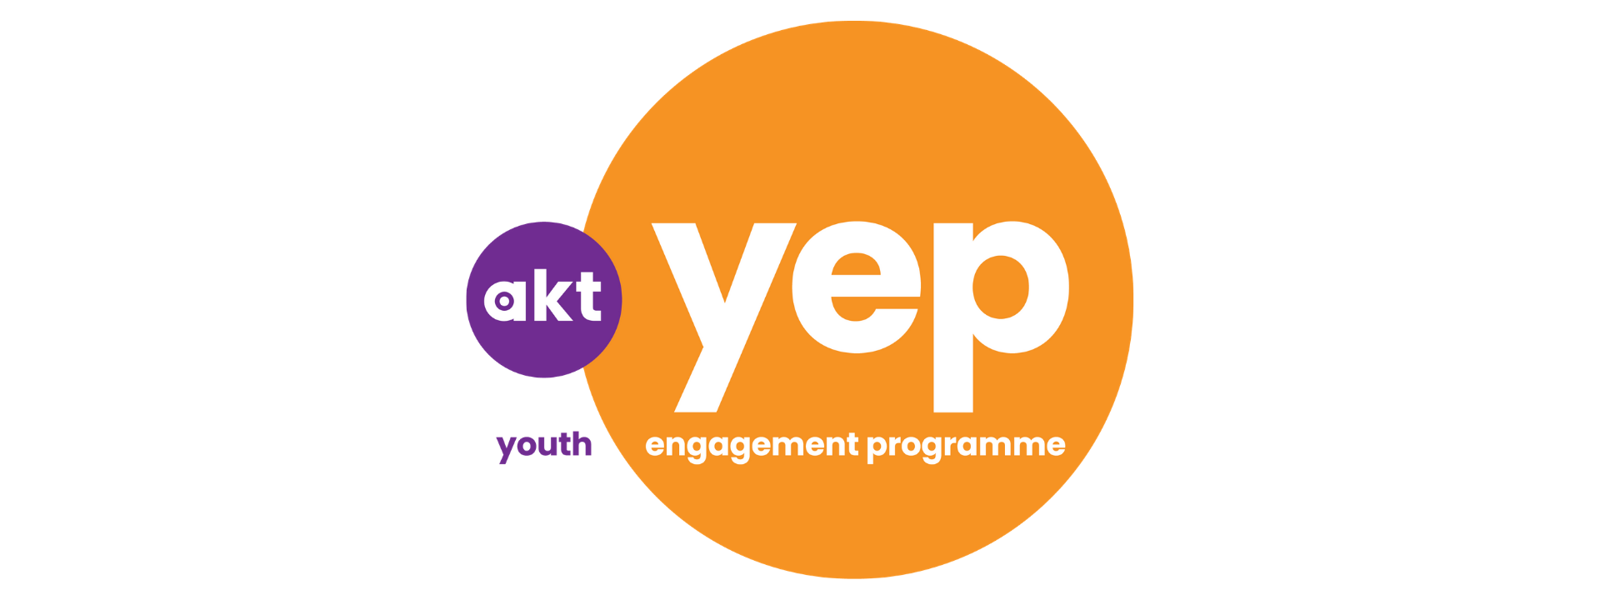 akt Youth Engagement Programme